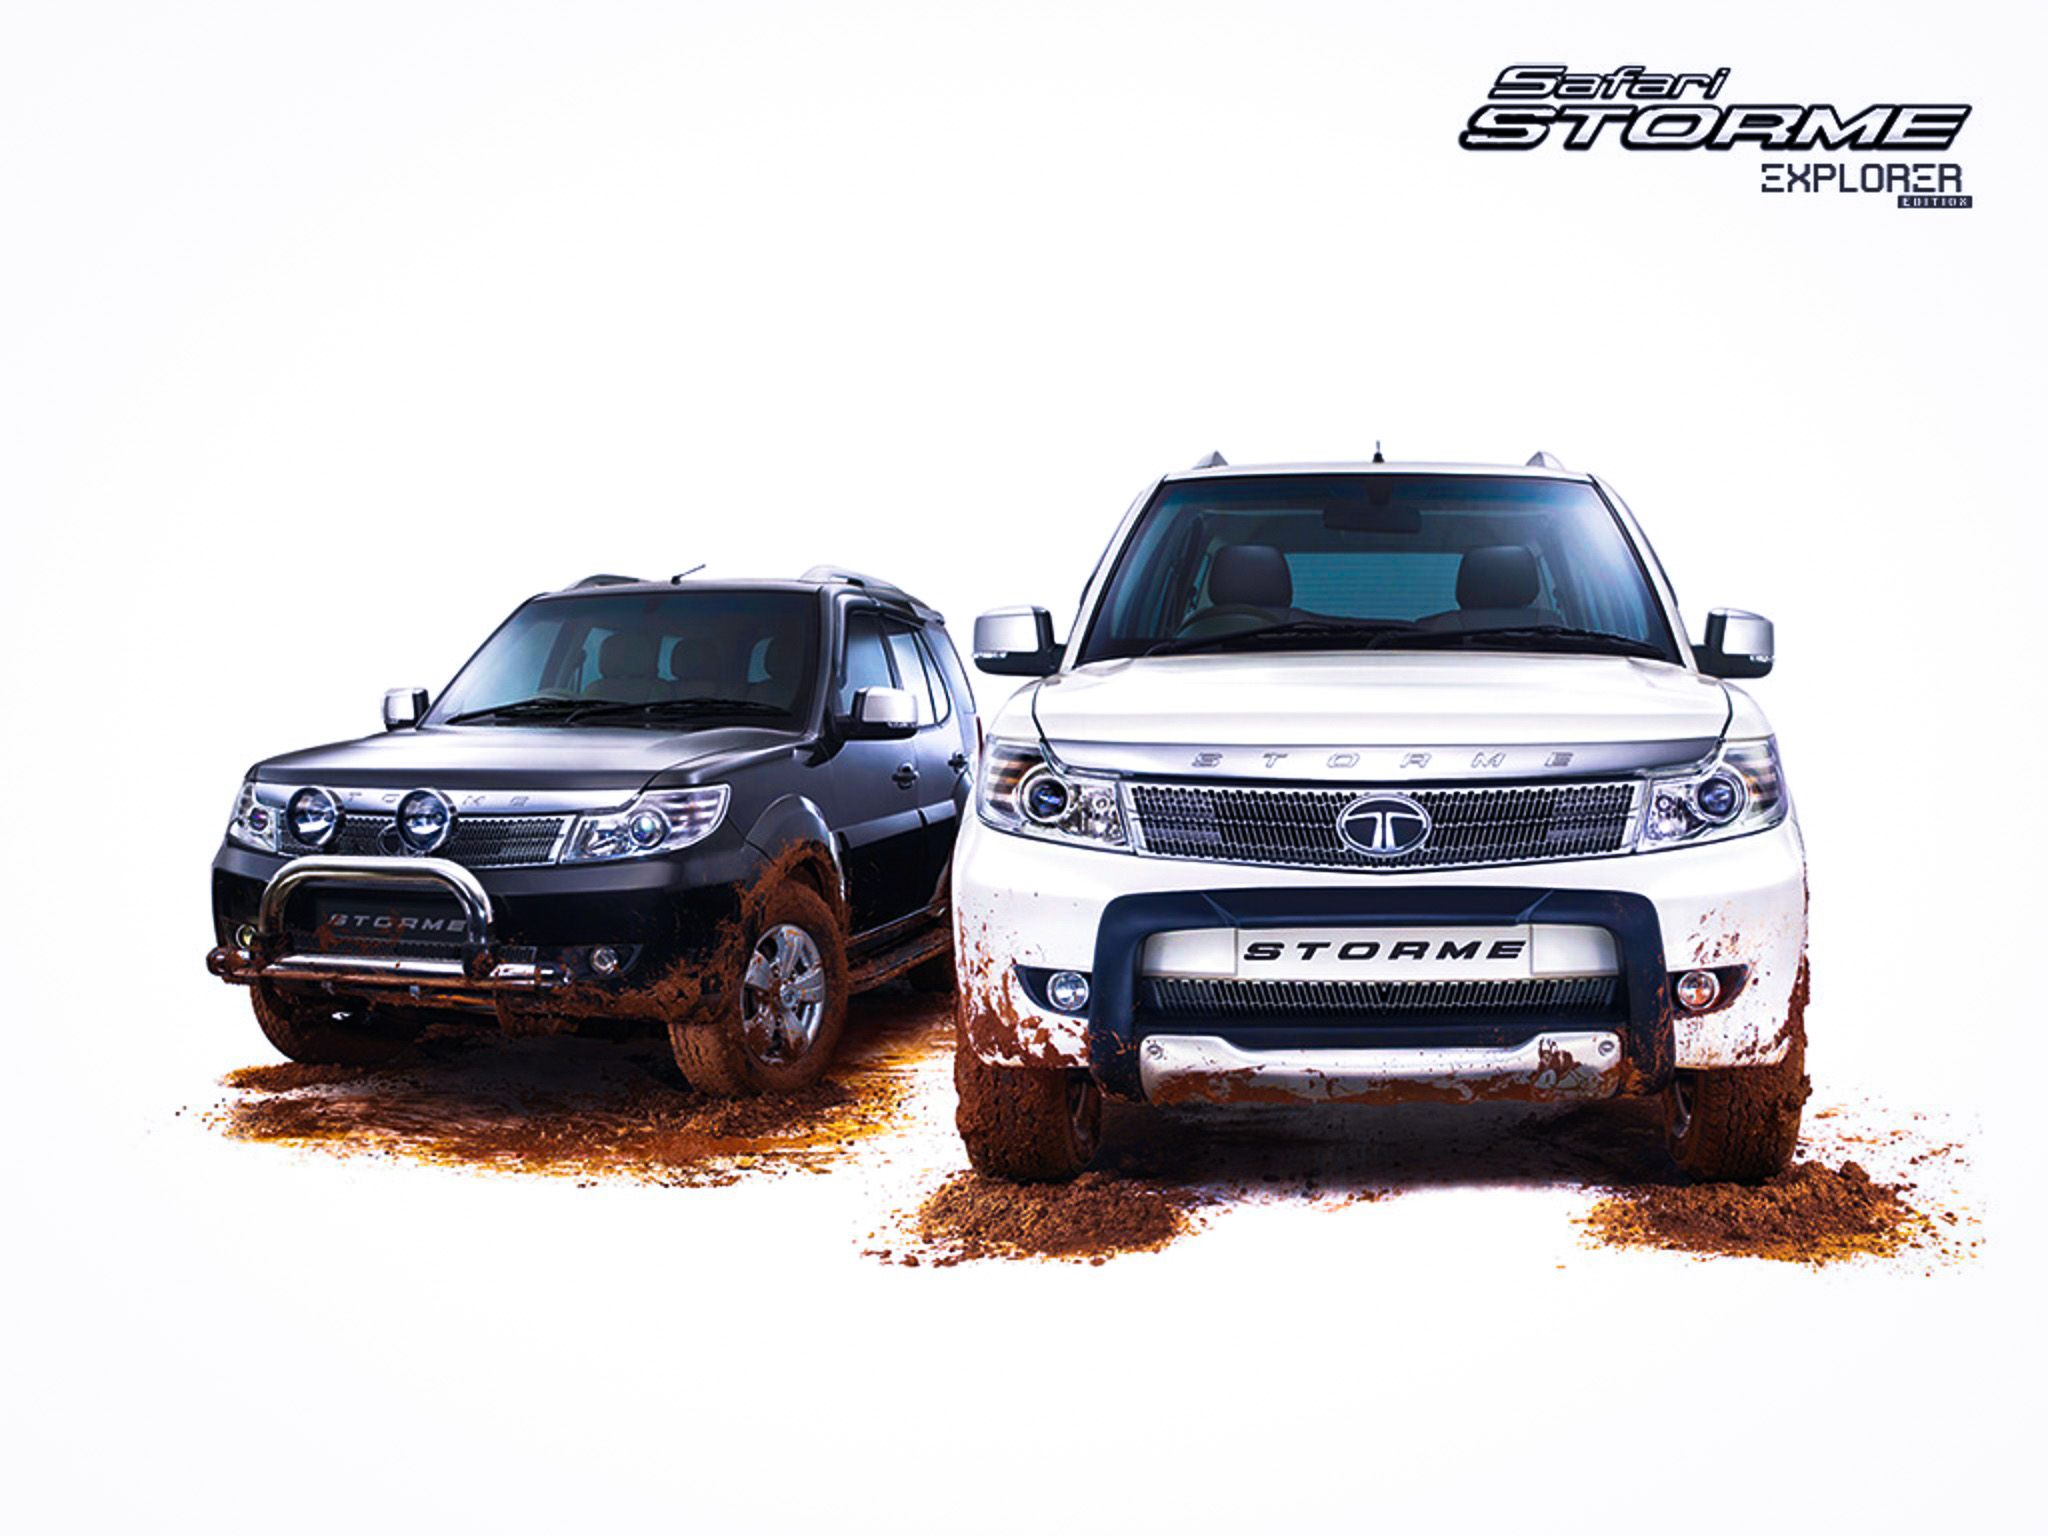 Tata Safari Storme Explorer Edition.